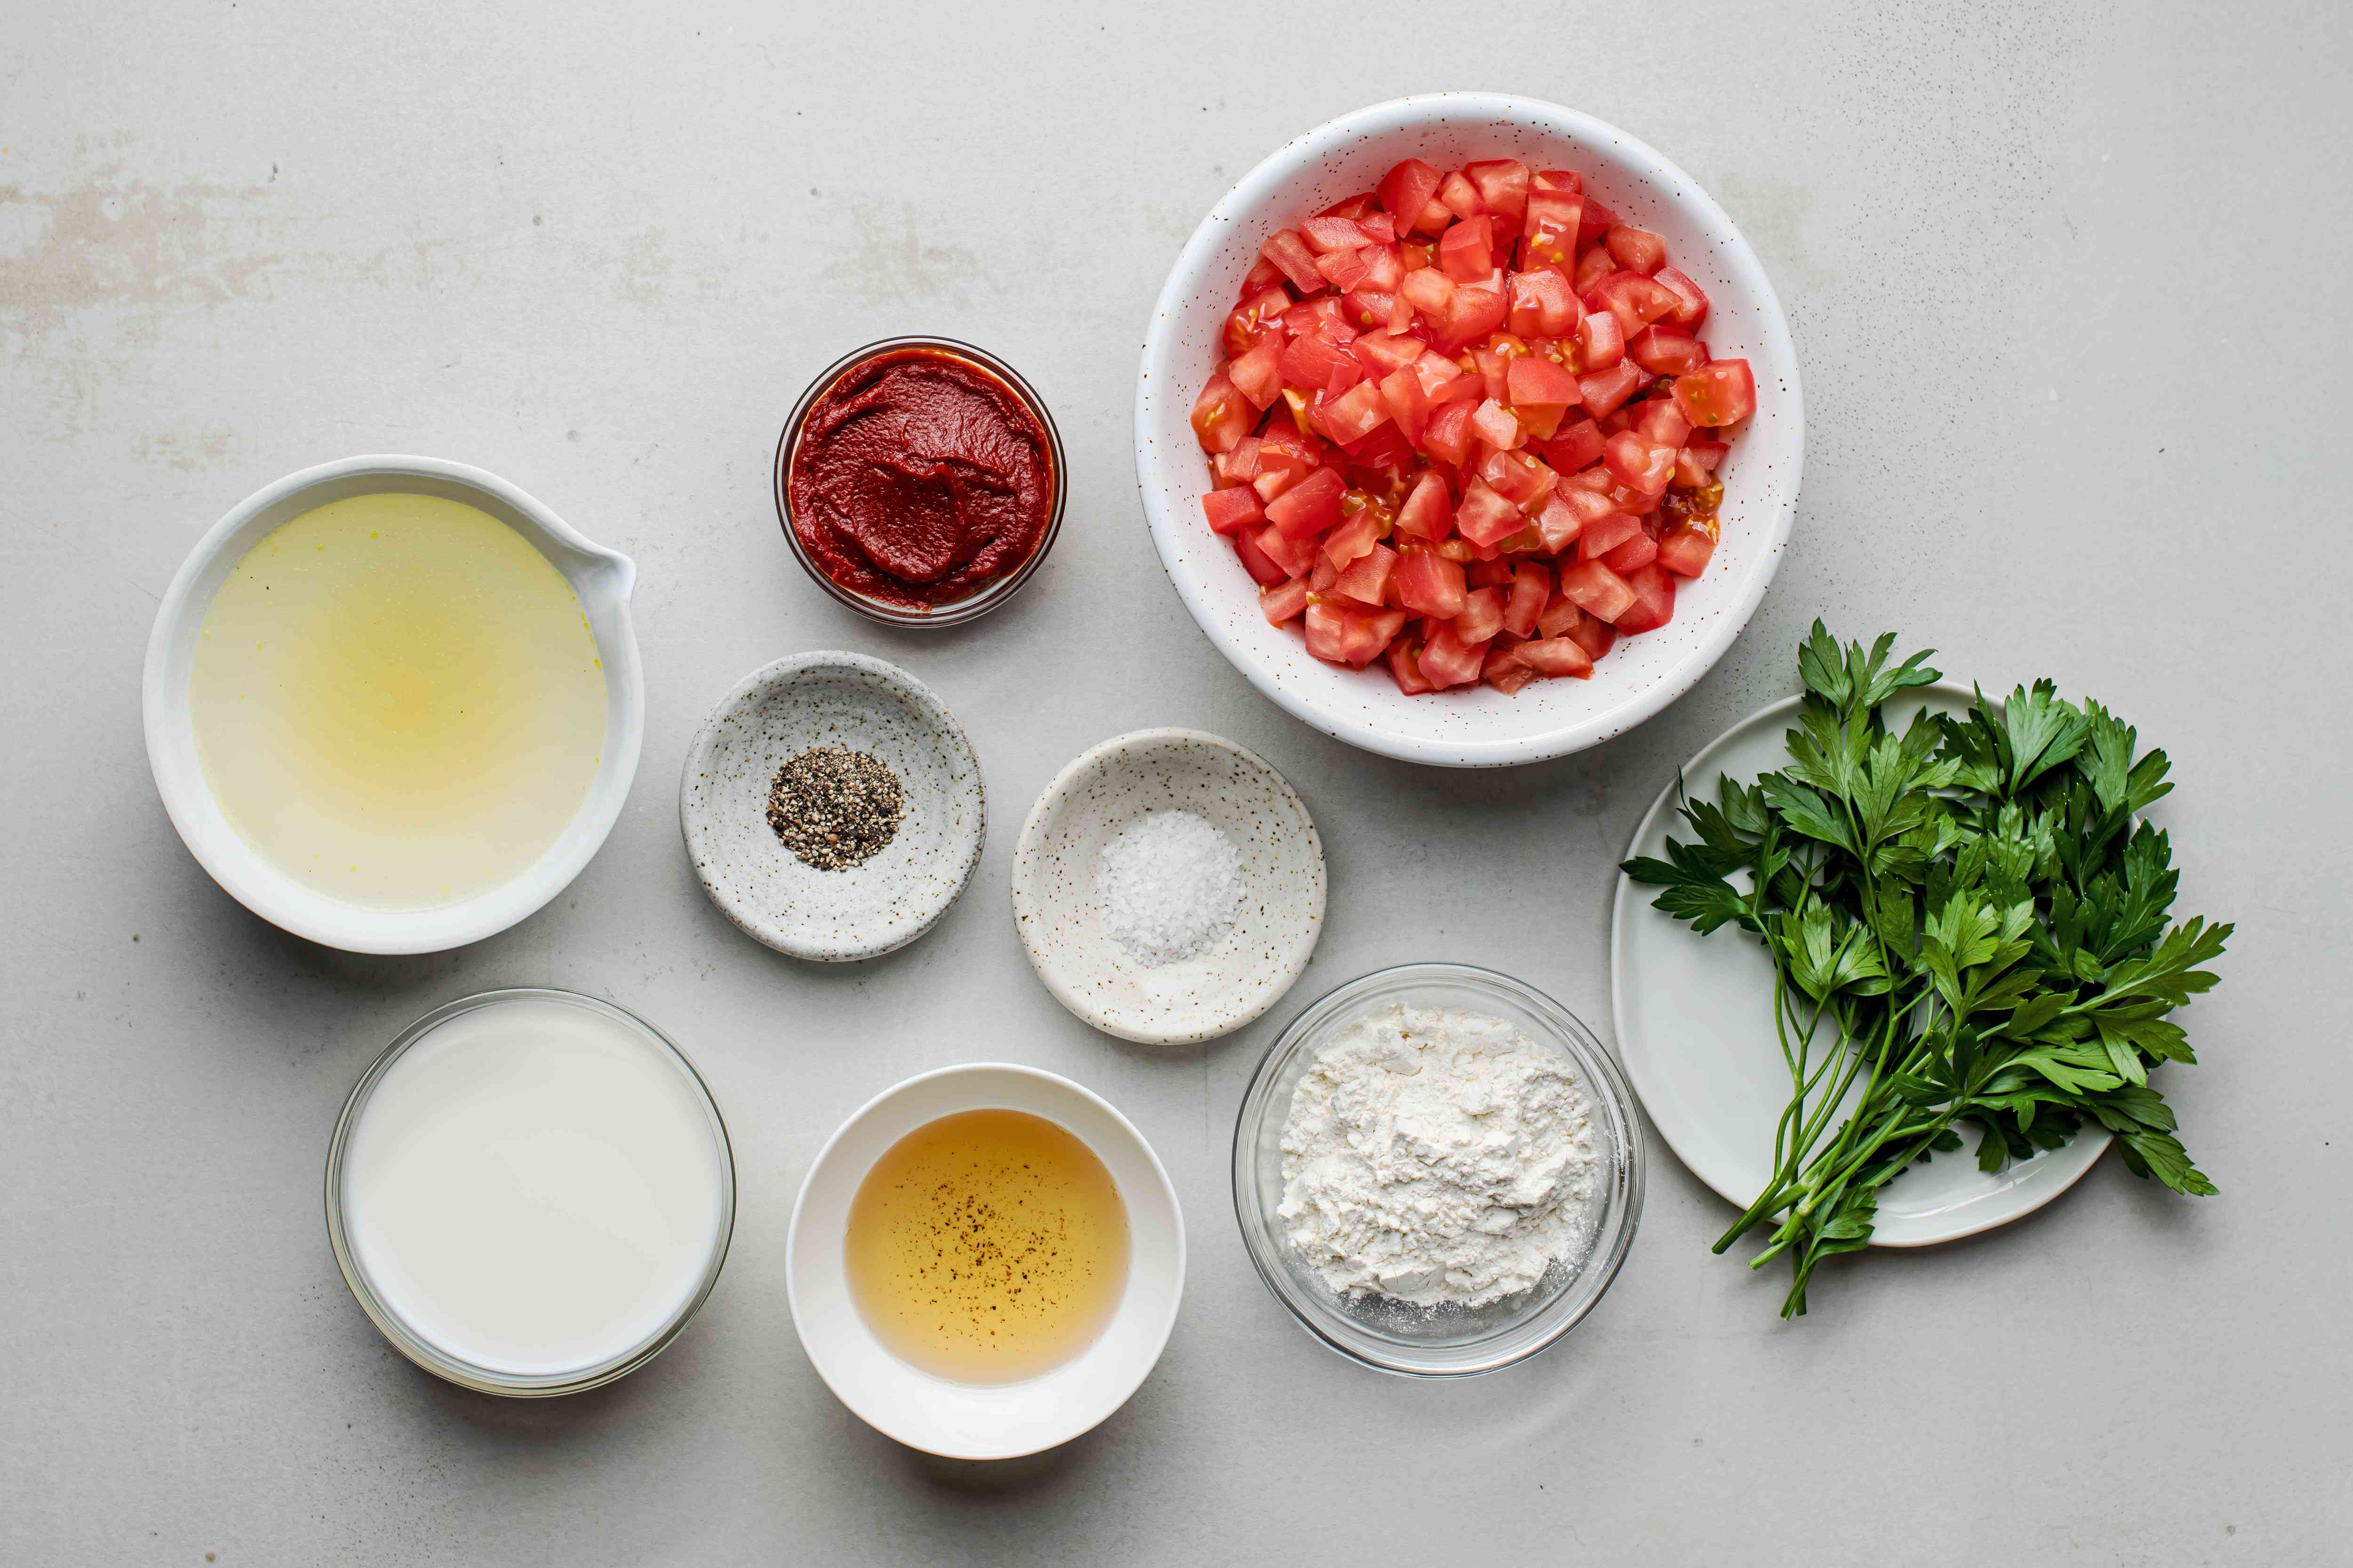 Old-fashioned Southern tomato gravy ingredients